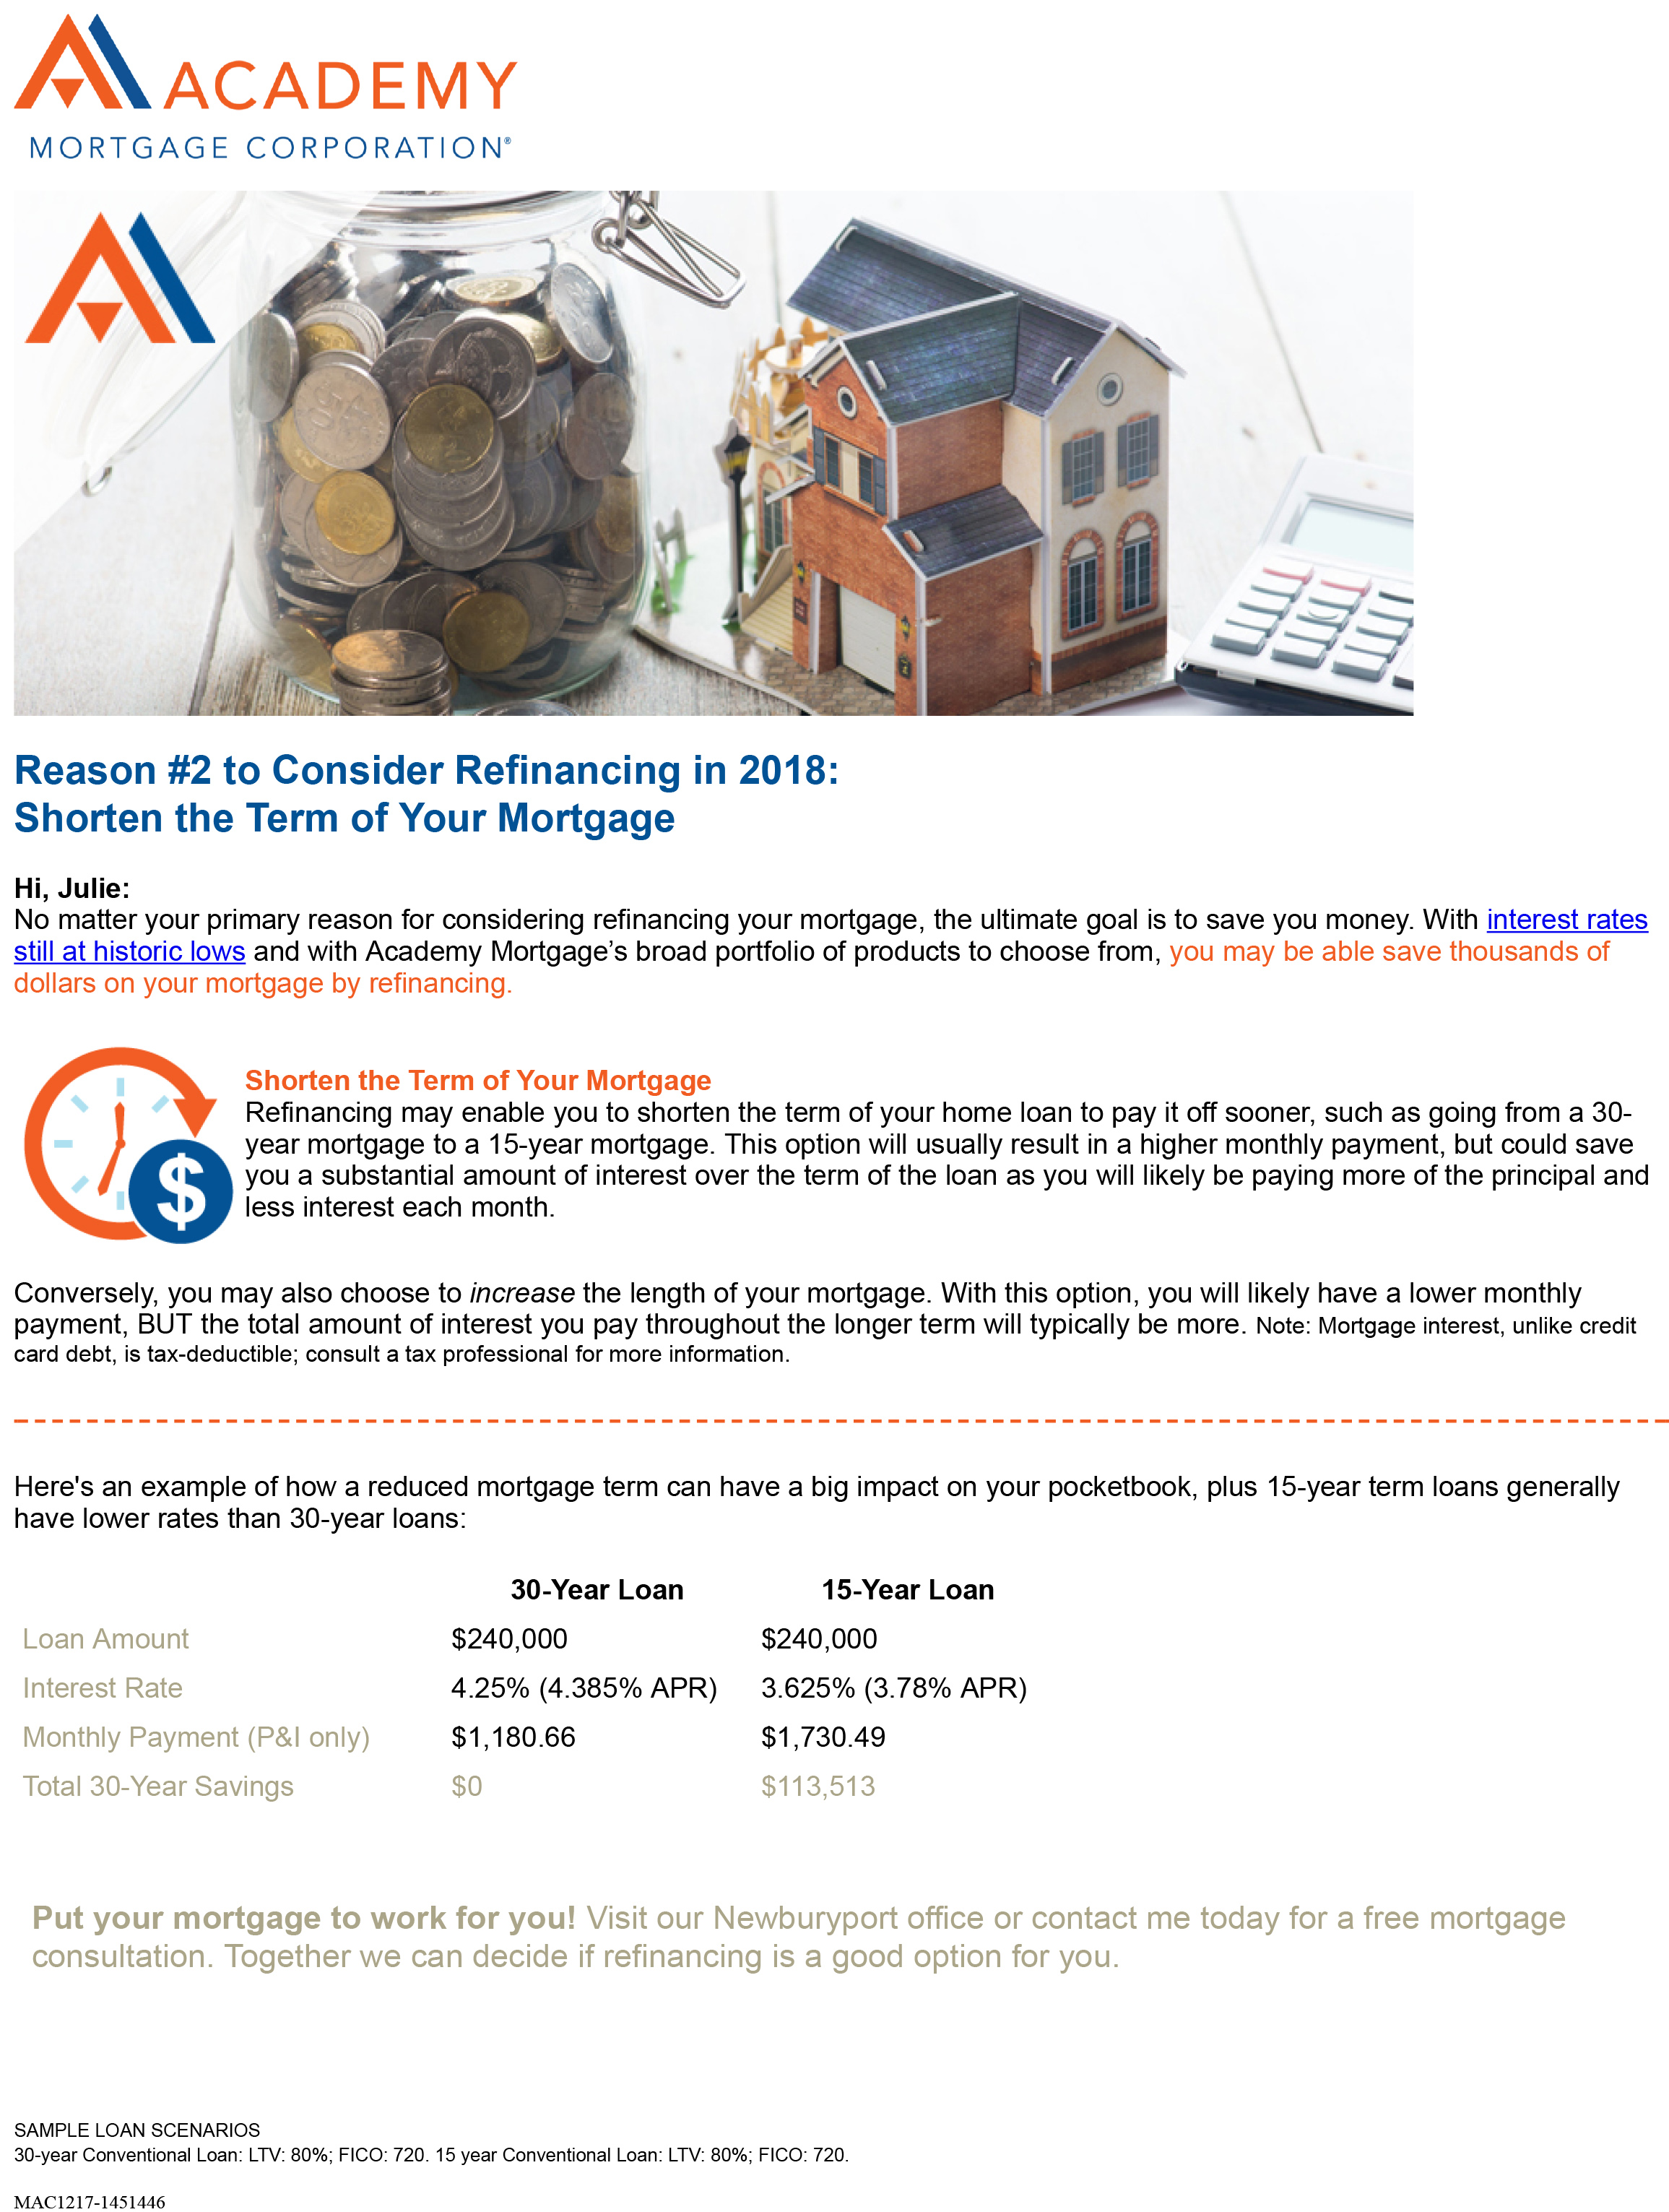 3Julie, pay less over time by refinancing to a shorter-term mortgage